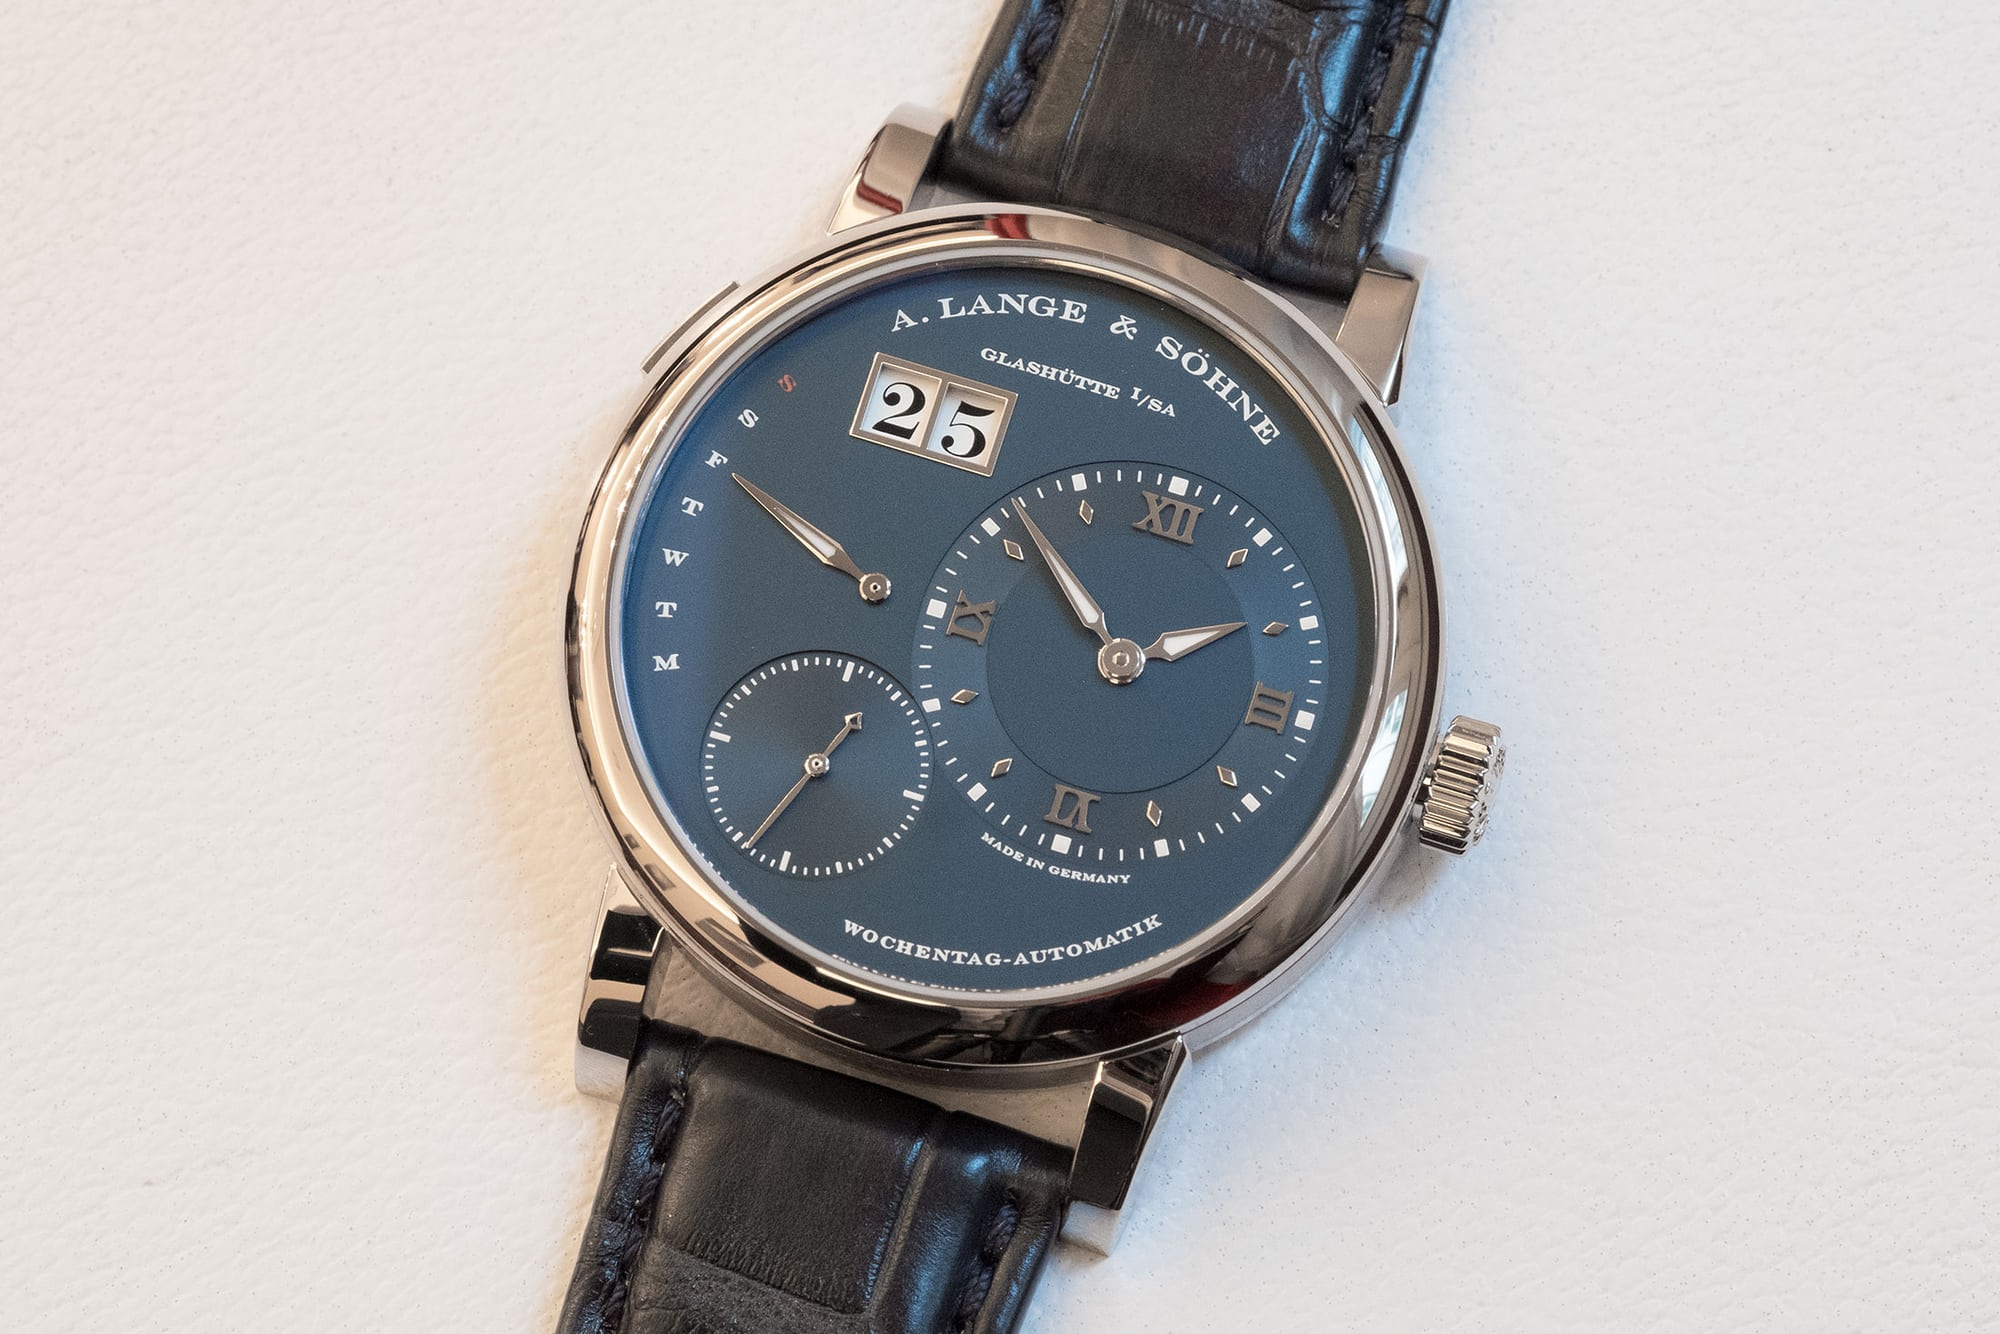 a lange sohne blue dial lange 1 daymatic introducing: four new blue dials from a. lange & shne (live pics & pricing) Introducing: Four New Blue Dials From A. Lange & Shne (Live Pics & Pricing) blue 02